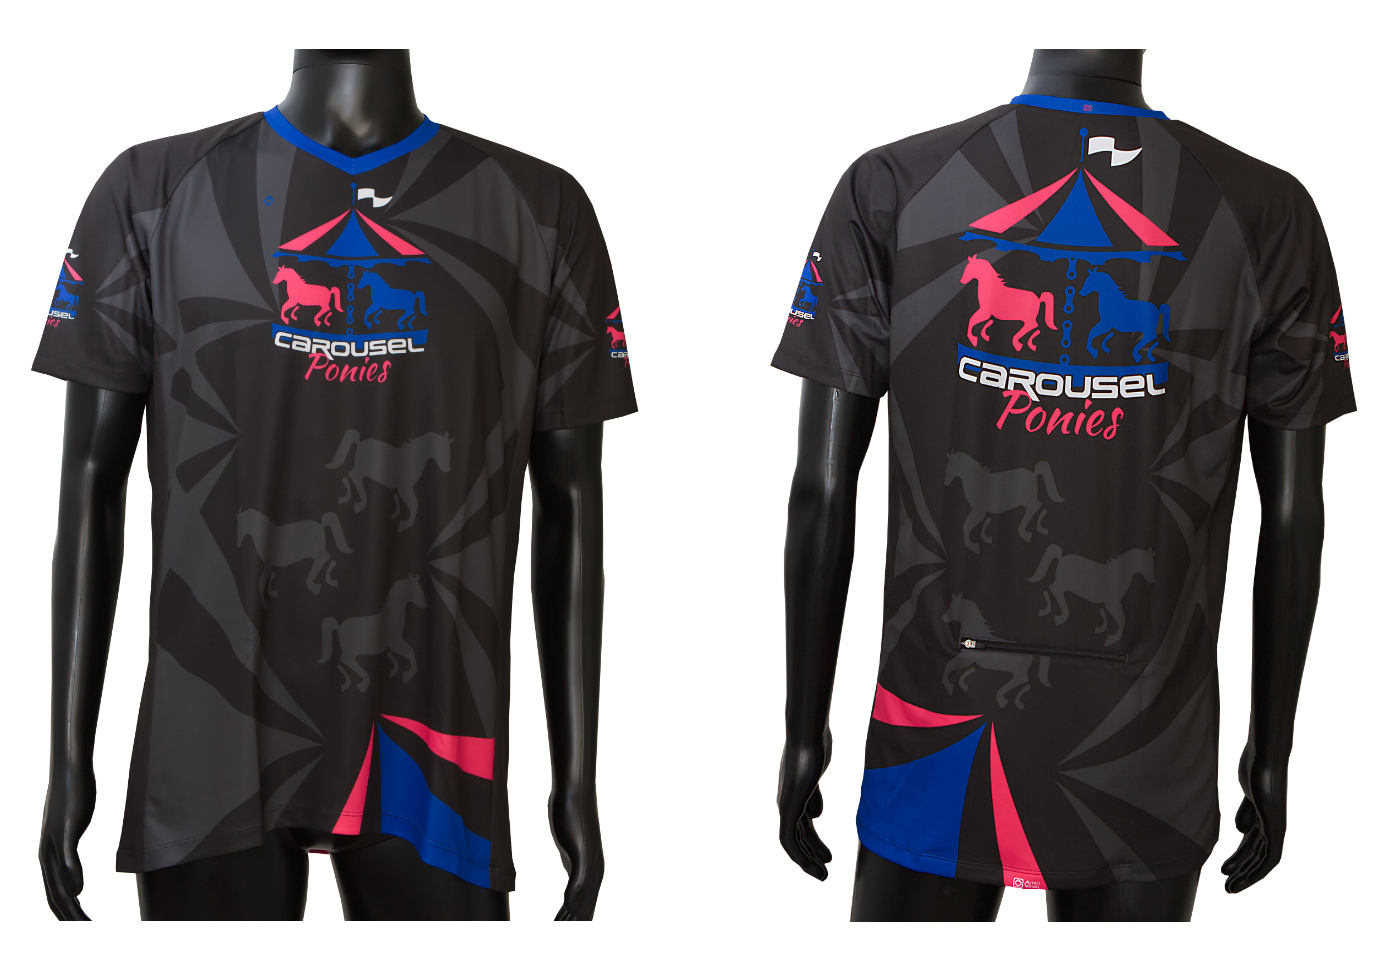 custom design mtb mountain bike jersey shirt top astro visual